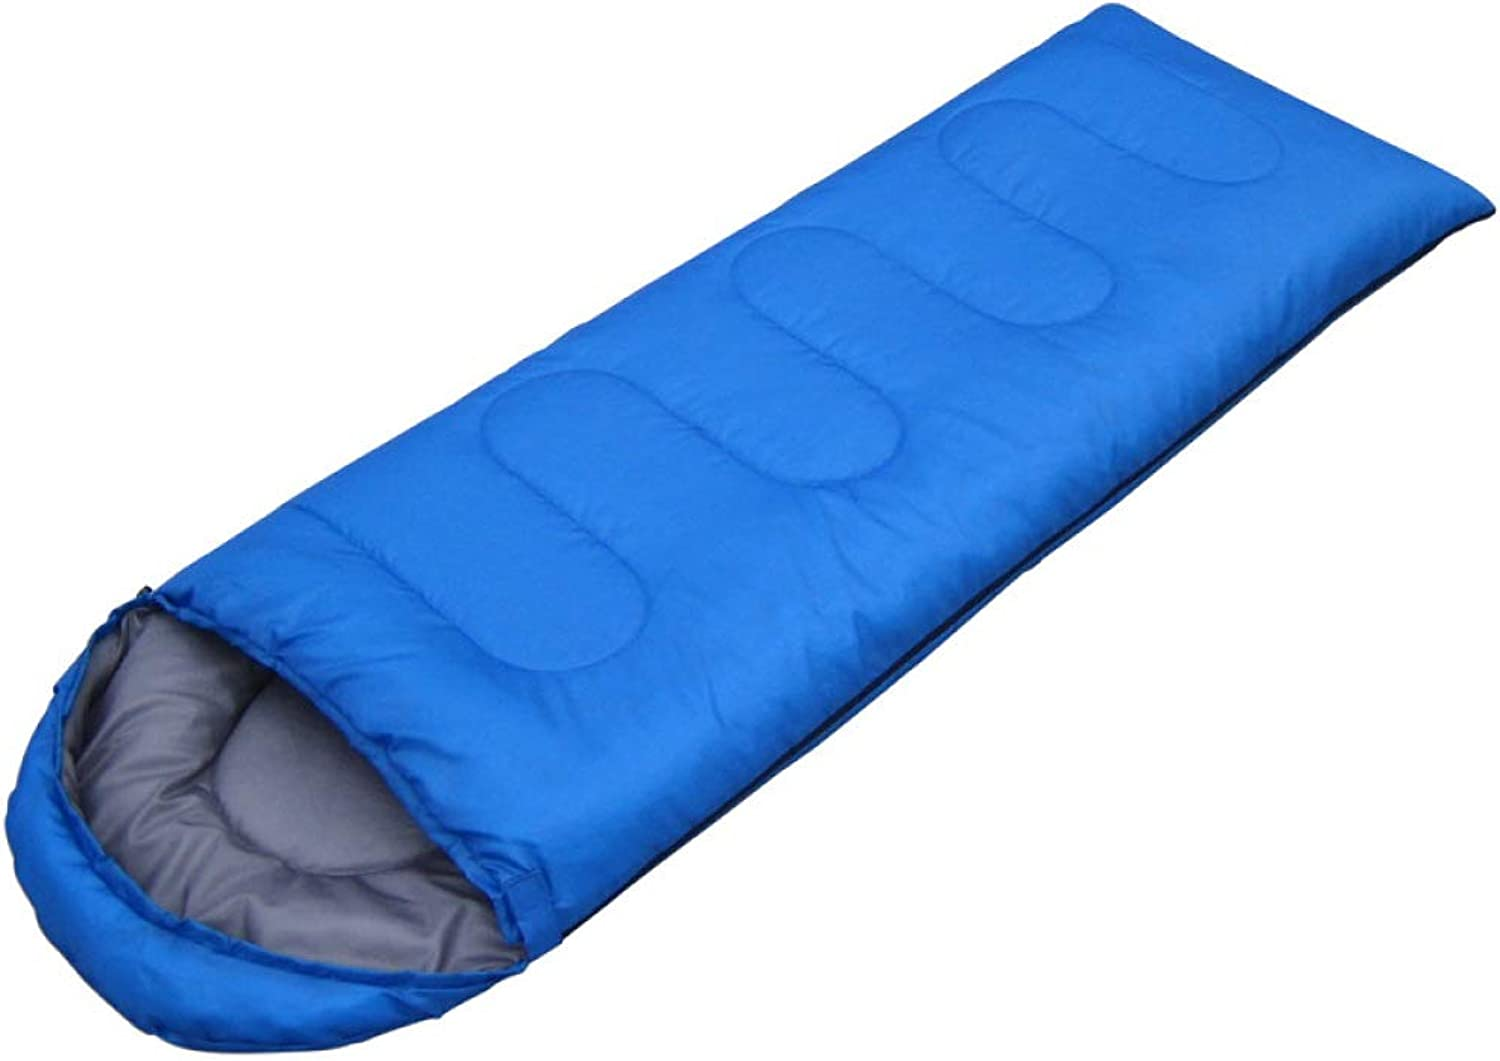 YSYW Camping Sleeping Bag 3-4 Season Warm Weather Lightweight Waterproof Great For Traveling And Outdoor Activities,bluee-0.95kg